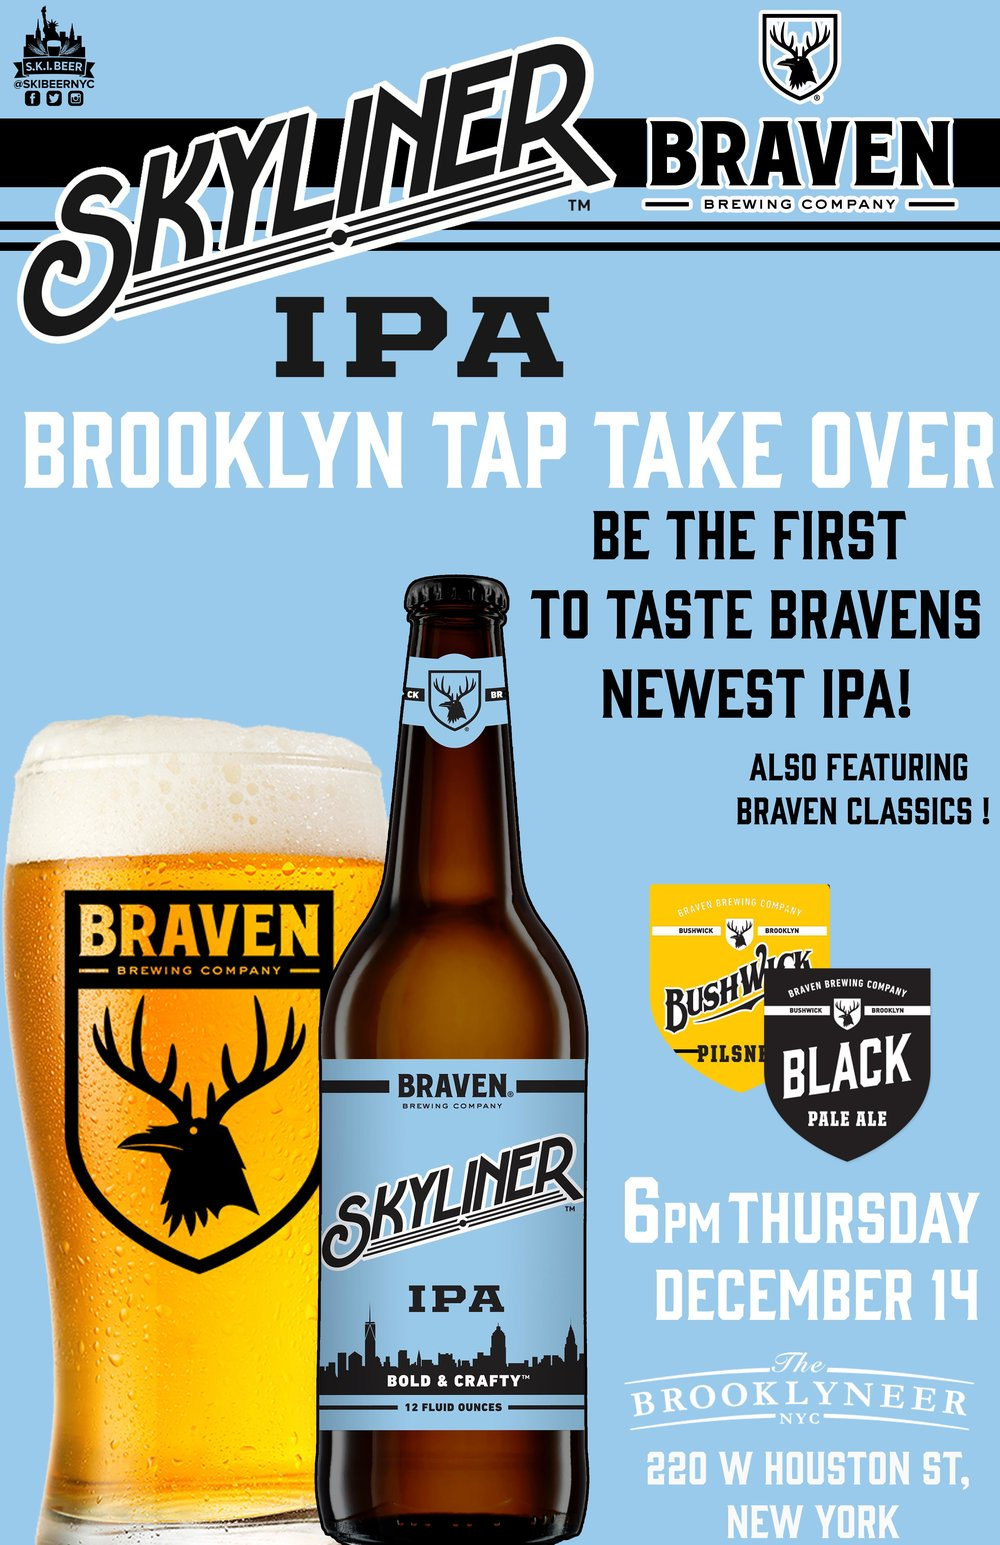 BROOKLYNEER _BRAVEN TAP TAKE OVER.jpg